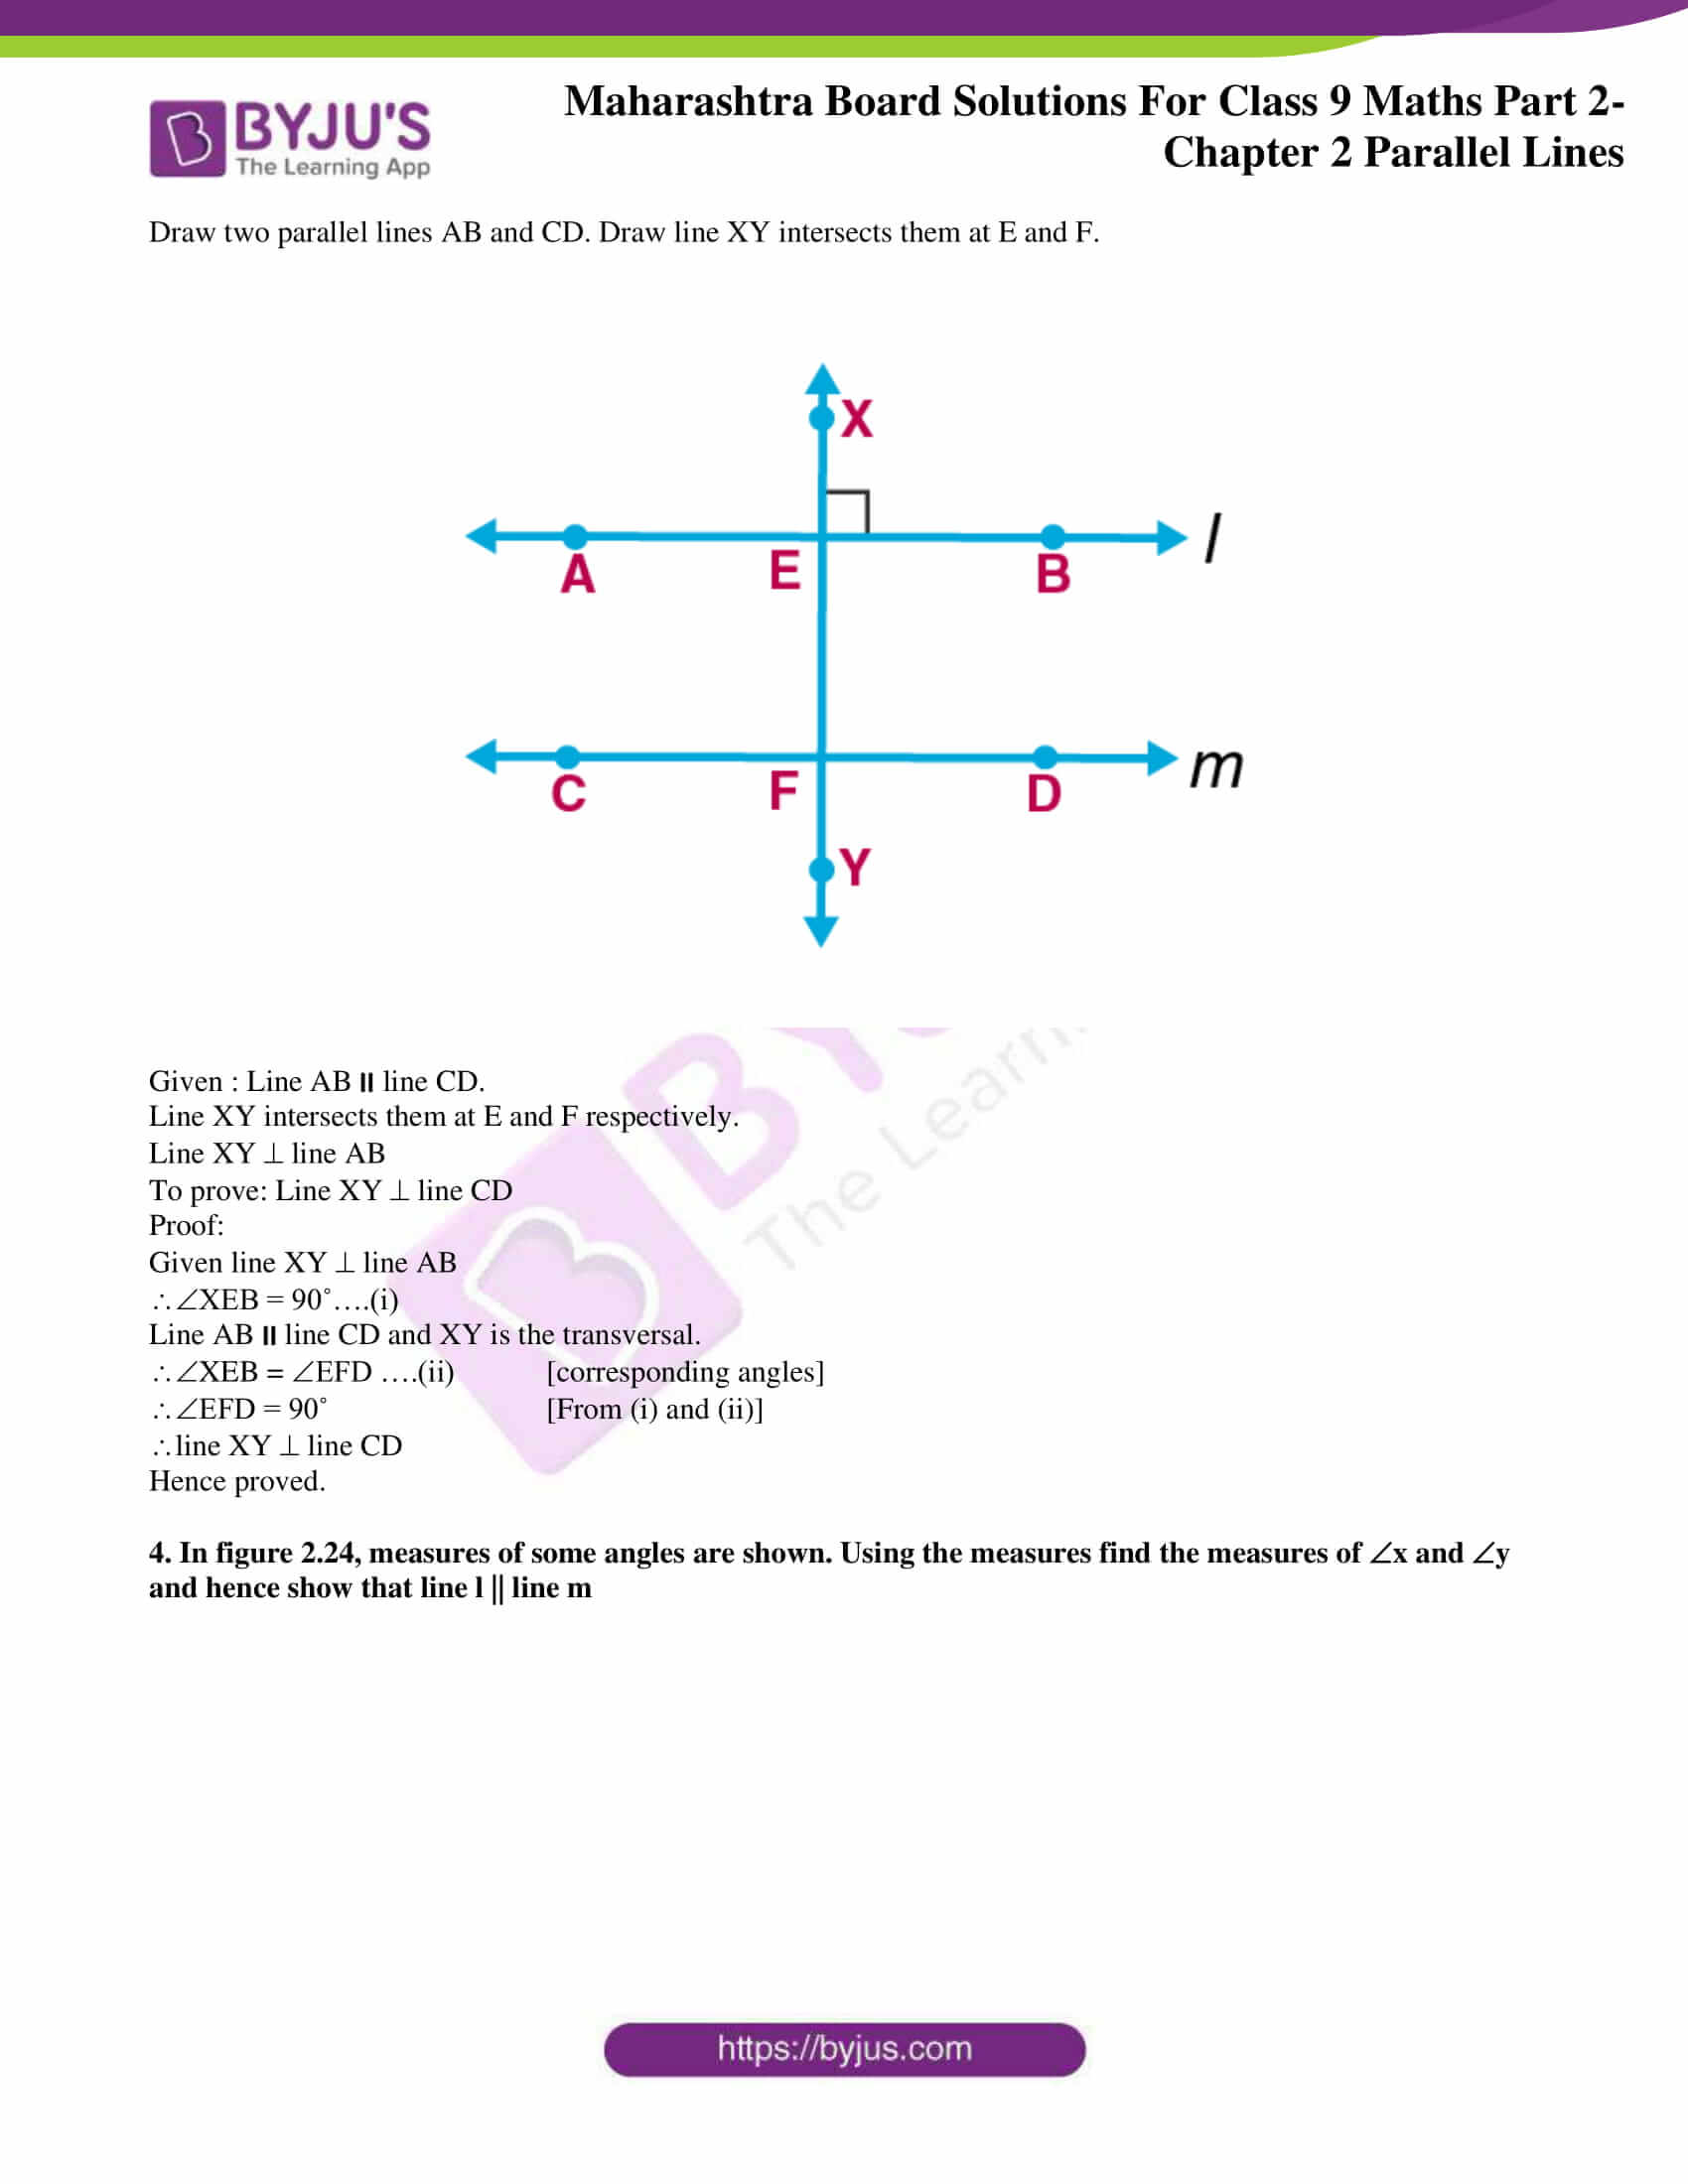 msbshse solutions for class 9 maths part 2 chapter 2 14